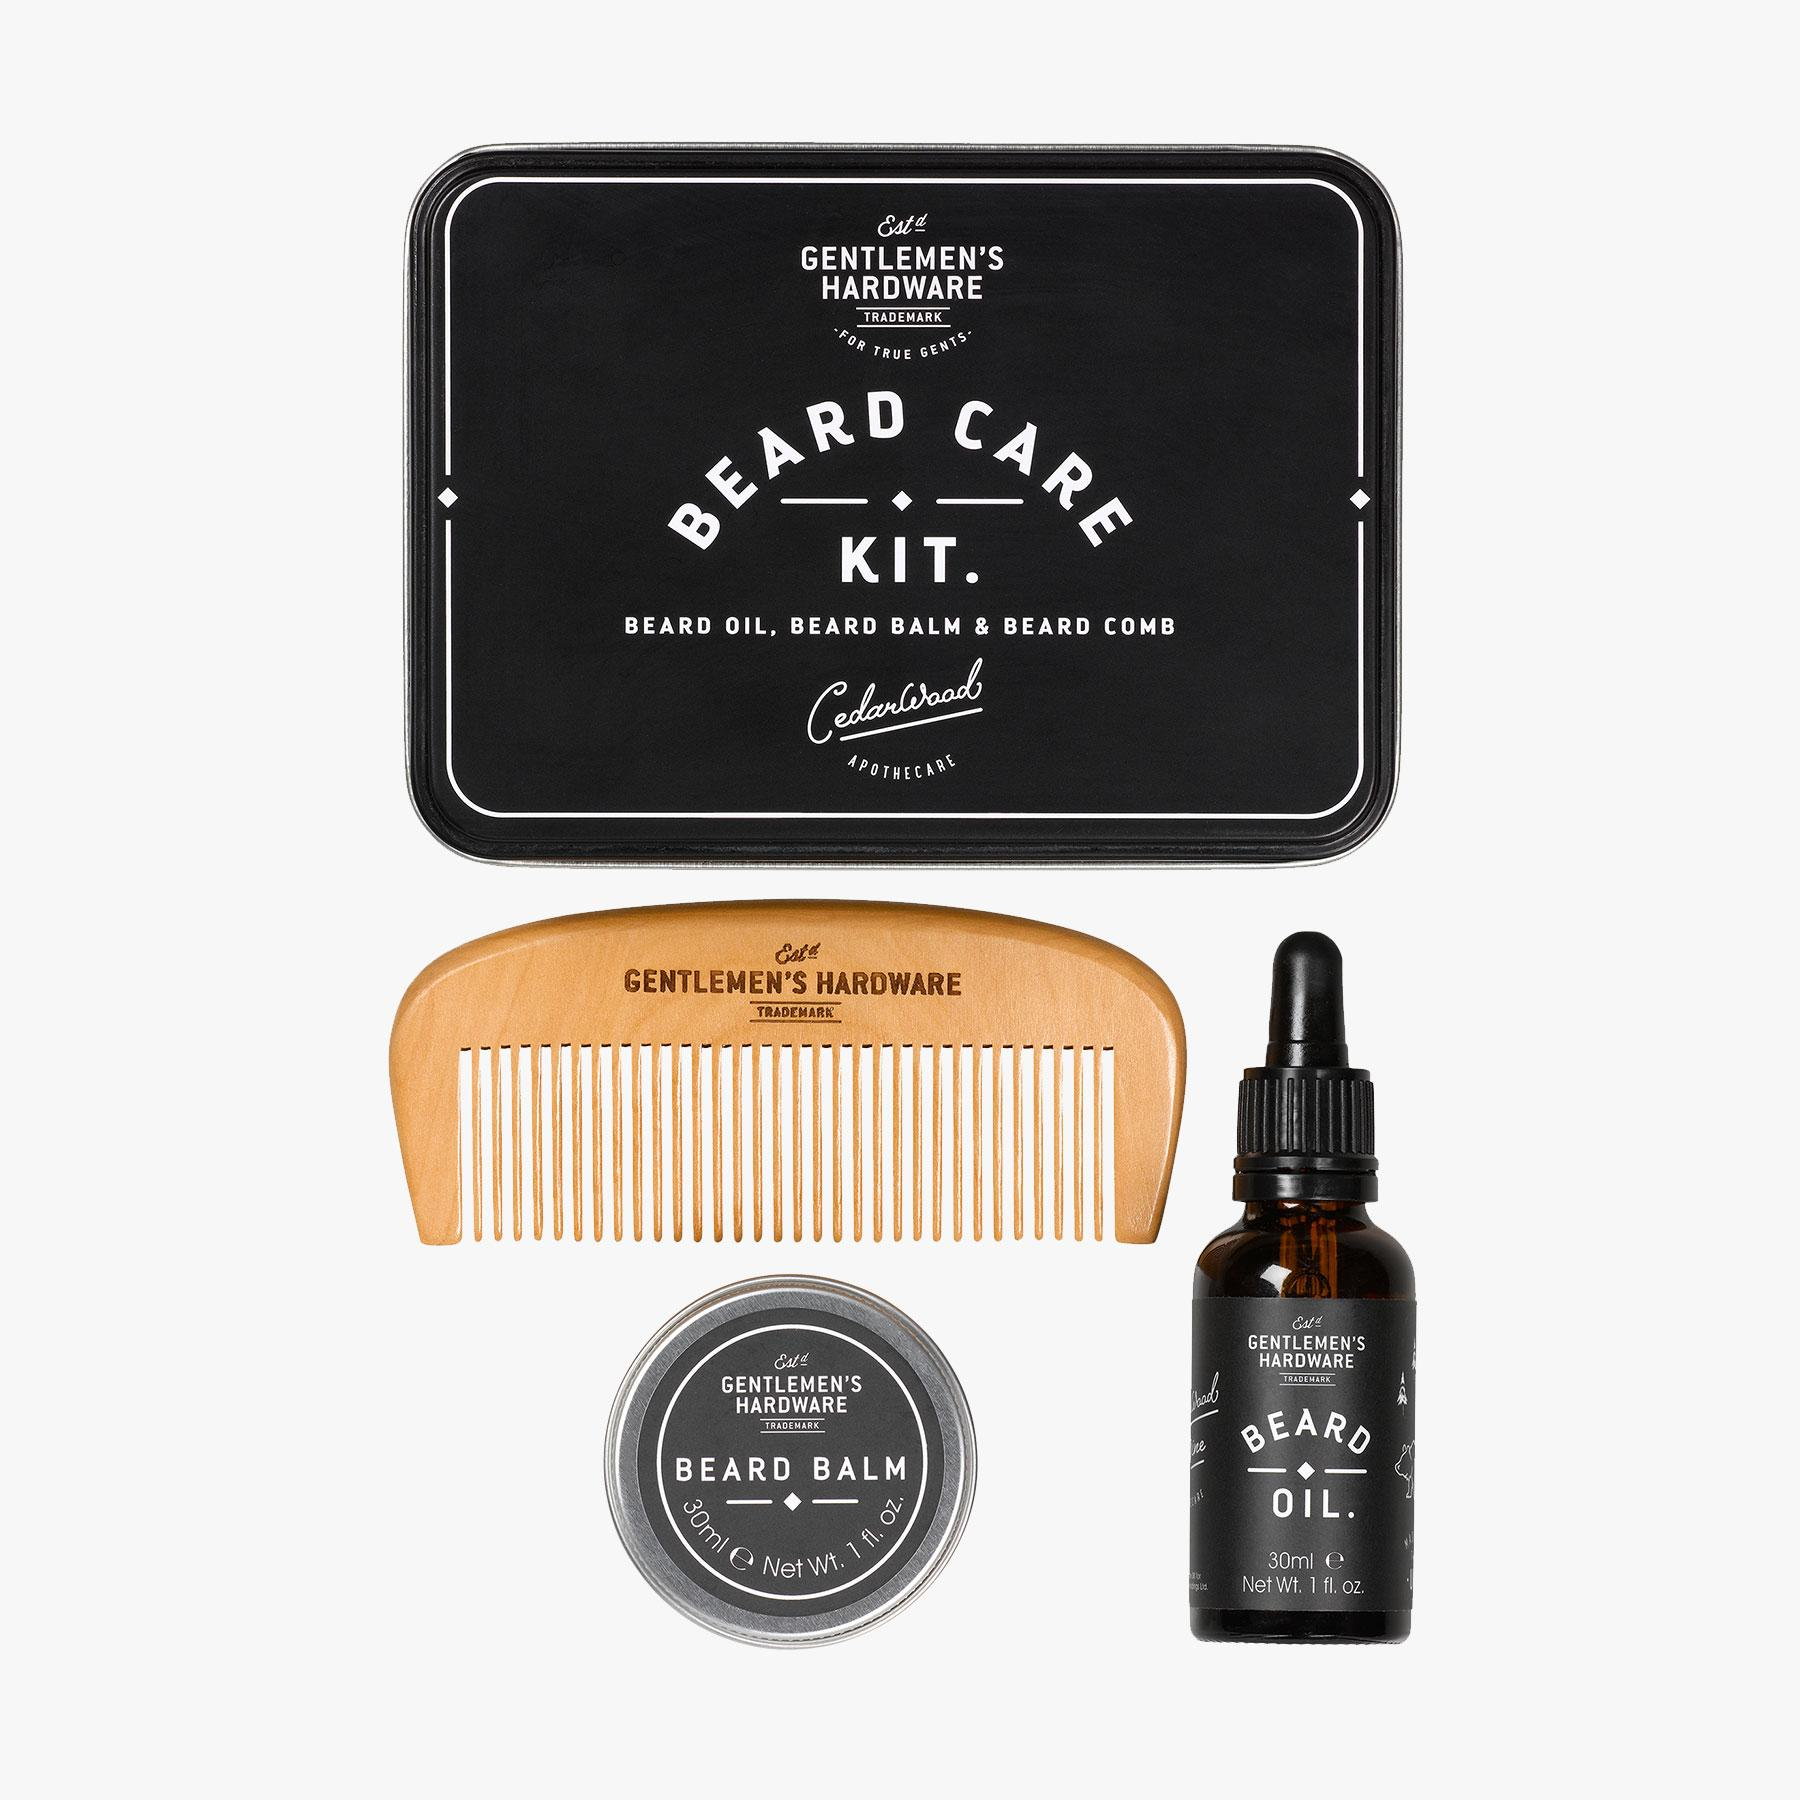 Gentleman's Hardware Beard Care Kit